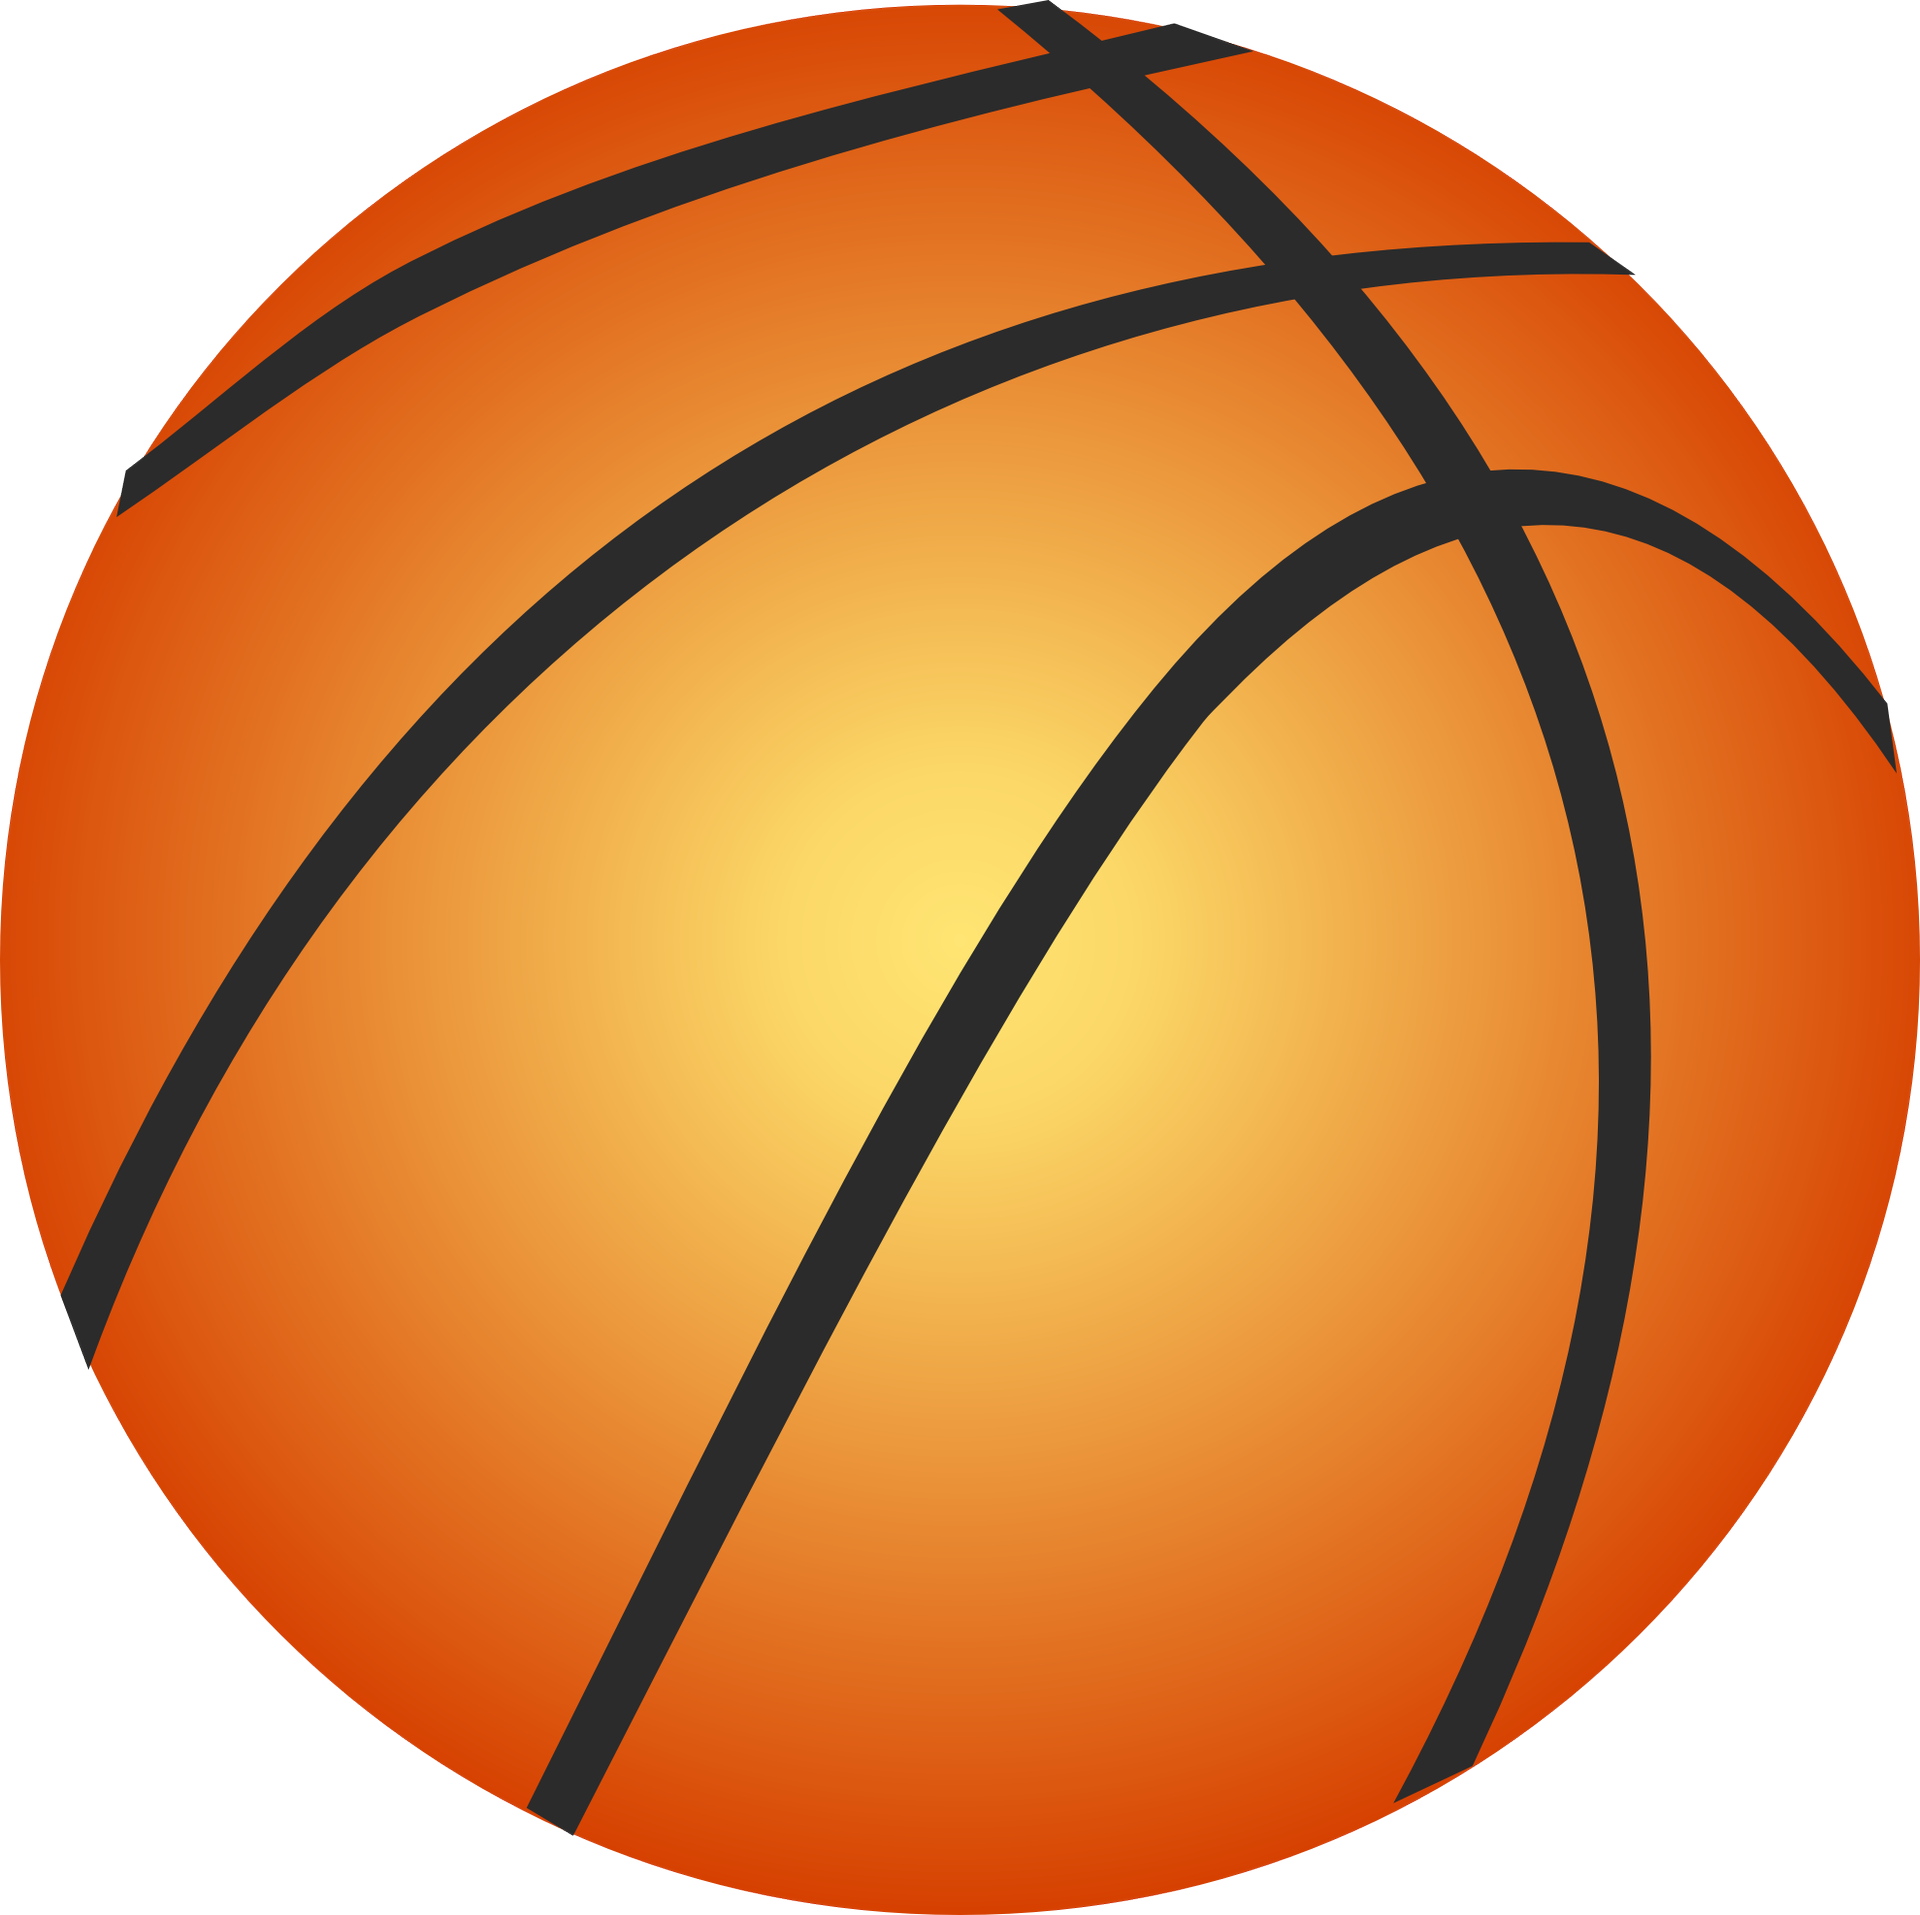 Basketball homecoming clipart jpg royalty free stock Country Christian School jpg royalty free stock